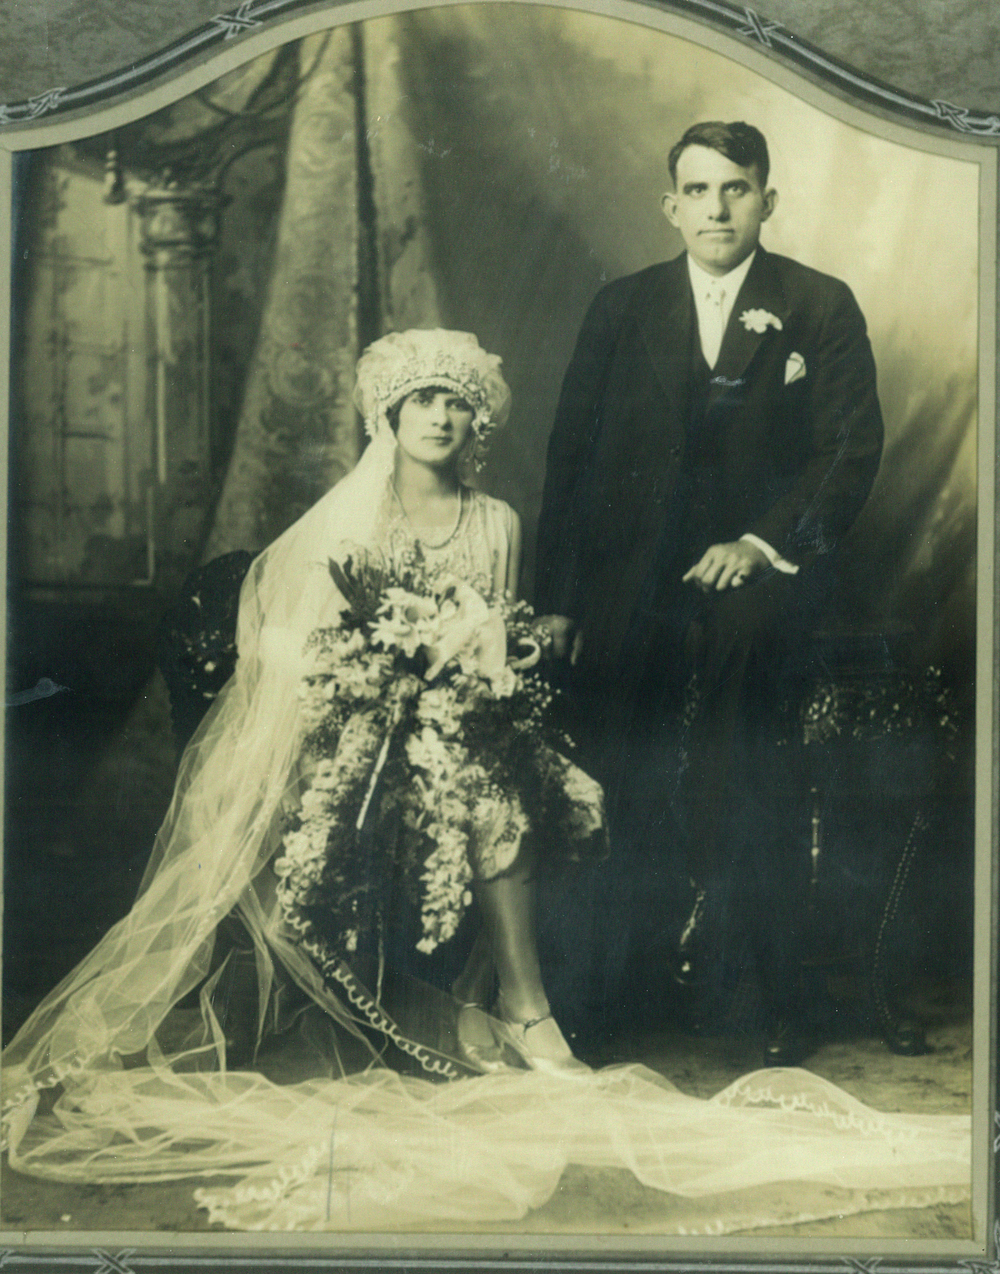 Maria and Vittorio Sangiacomo, 1927